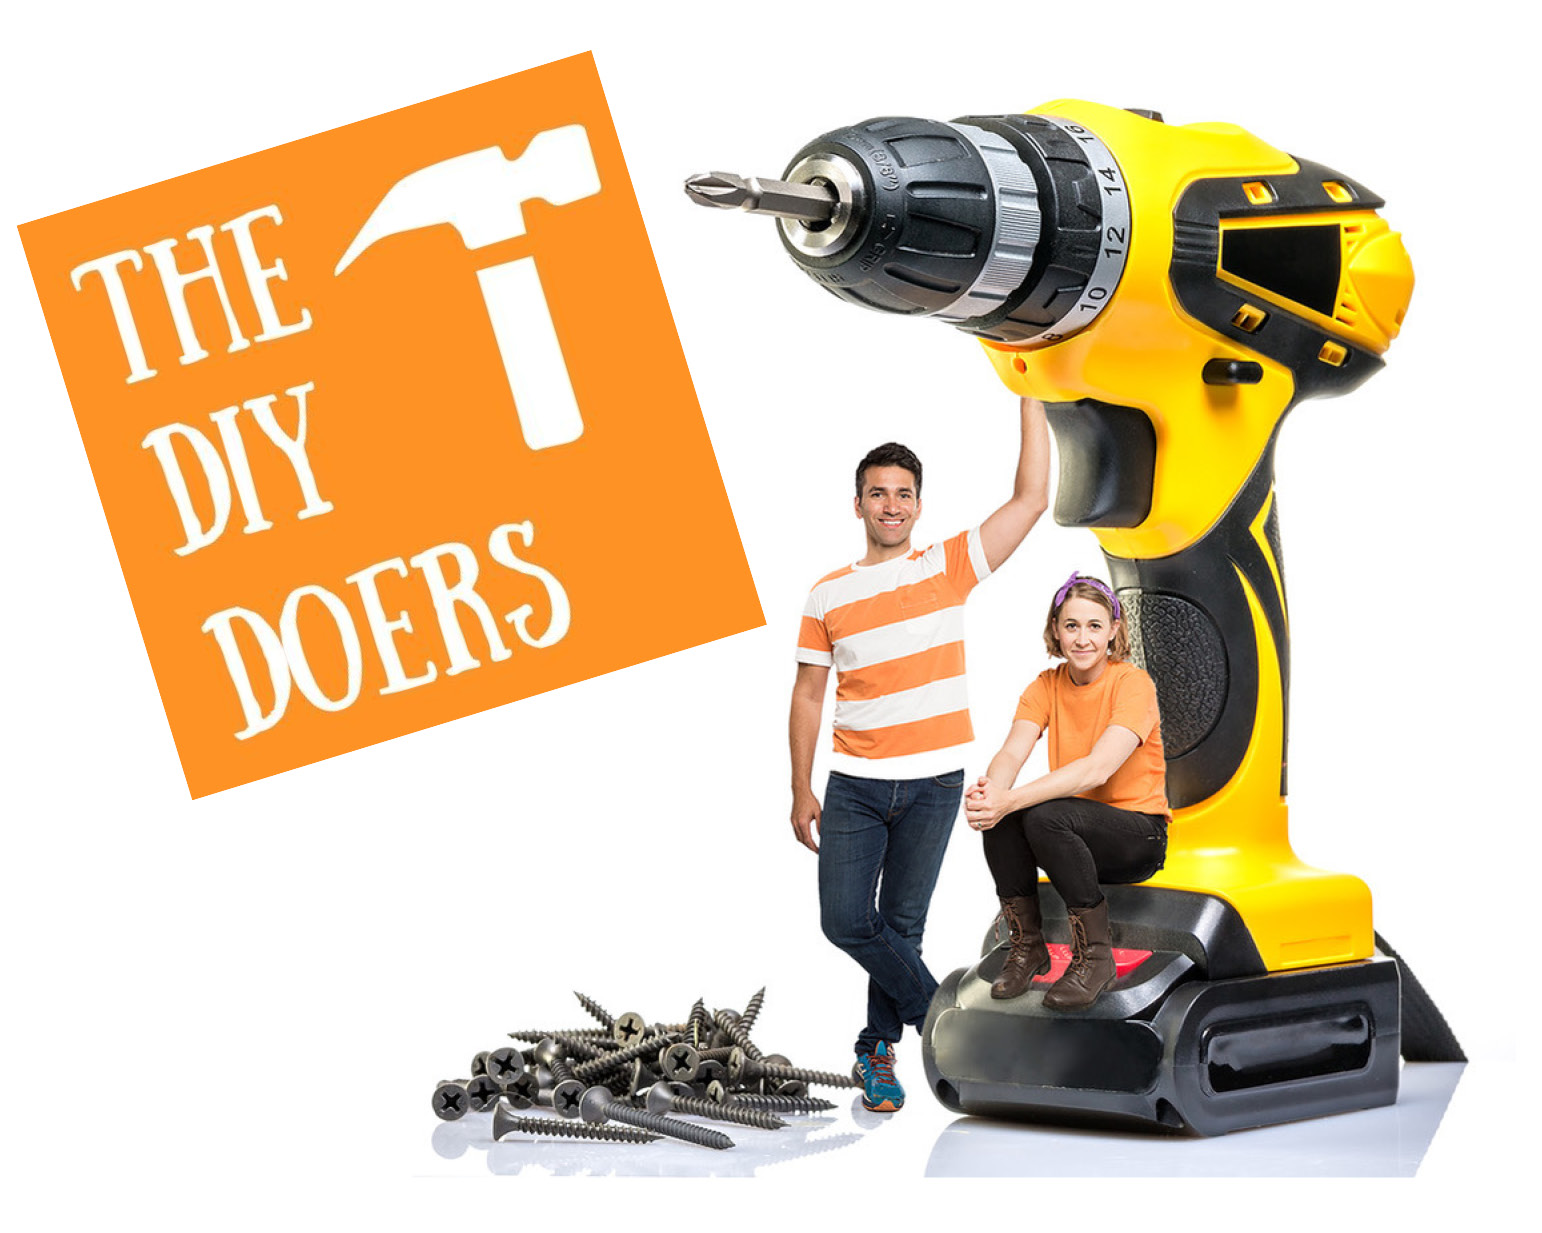 START Learning new skills with the DIY DOERS - The DIY Doers mission is to encourage you to learn new skills, save money,time and give you the confidence tobe a DIY Doer.This one stop shop is the only place that will get you started and finished on all those DIY jobs around the house.